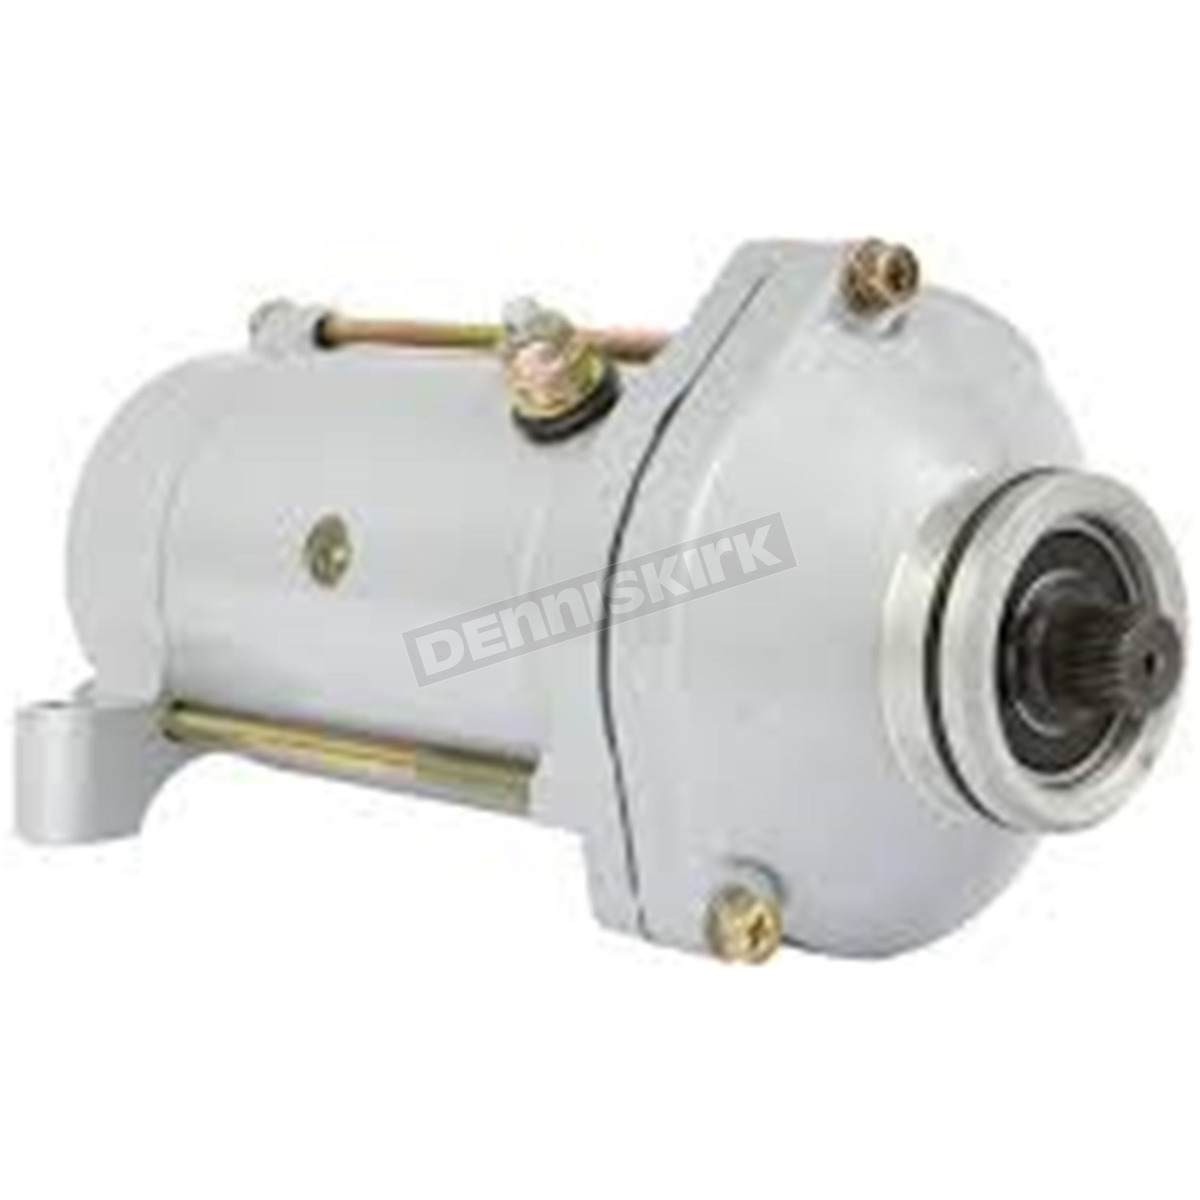 Parts unlimited starter motor smu0112 motorcycle for Nhd inc motor starter